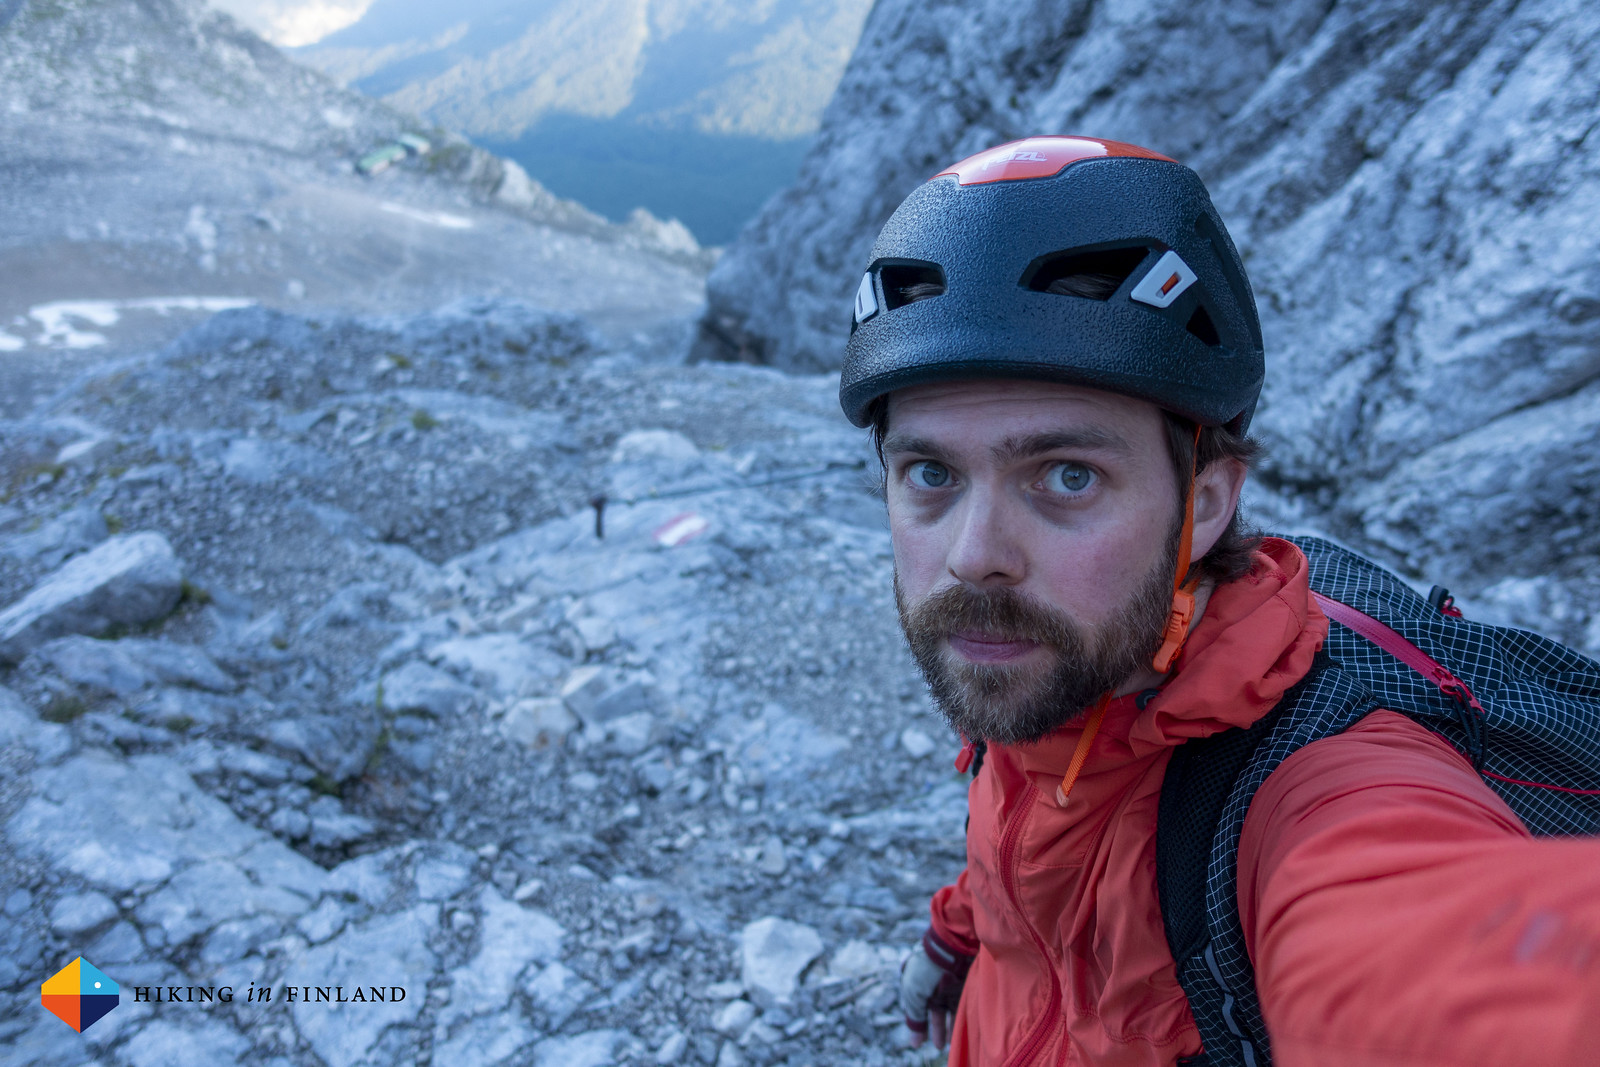 Selfie on the Stopselzieher Via Ferrata